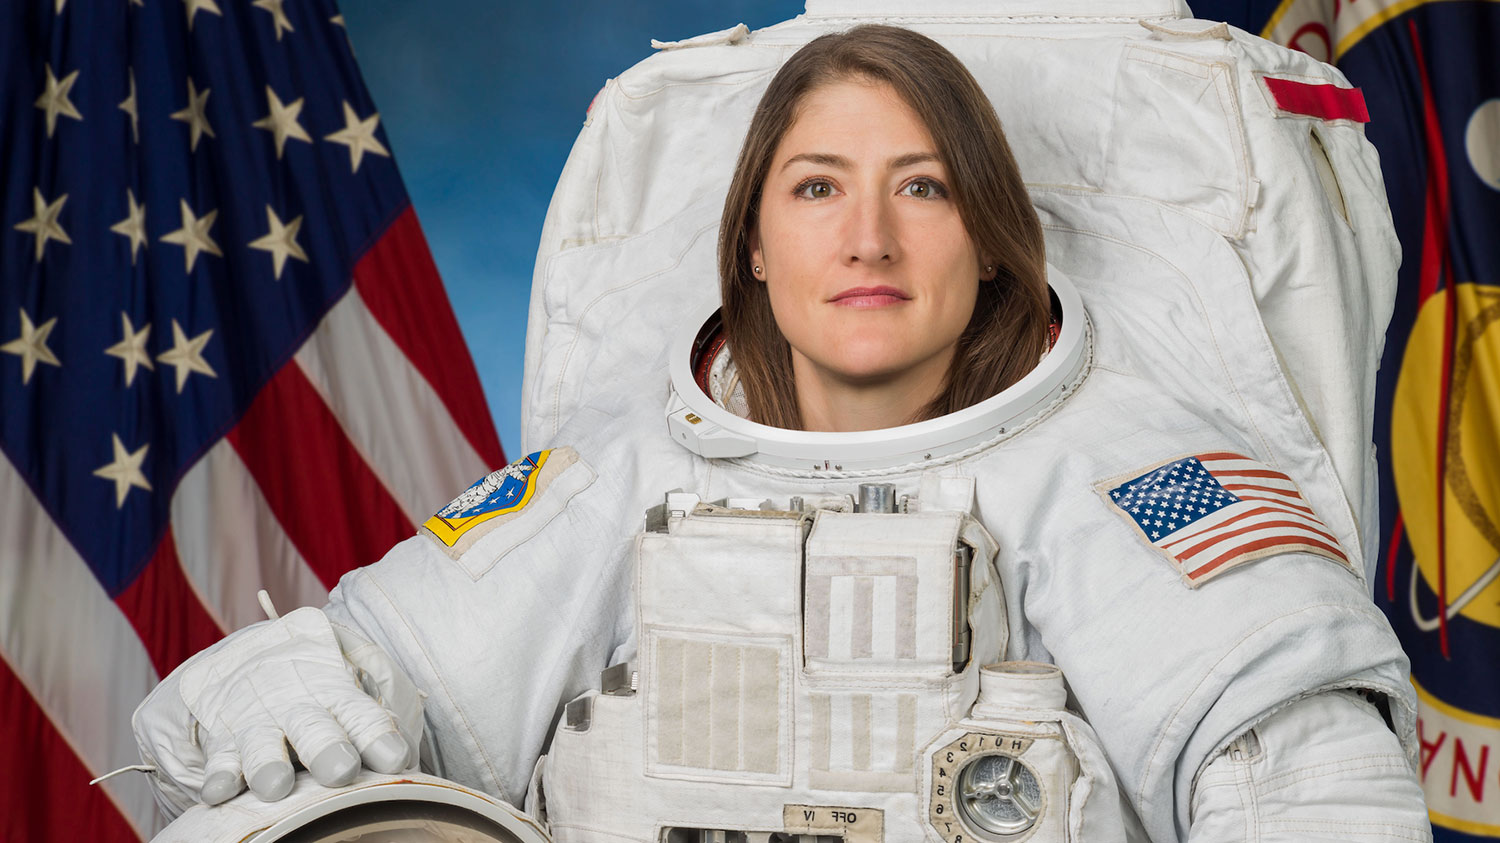 Astronaut and alumna Christina Koch